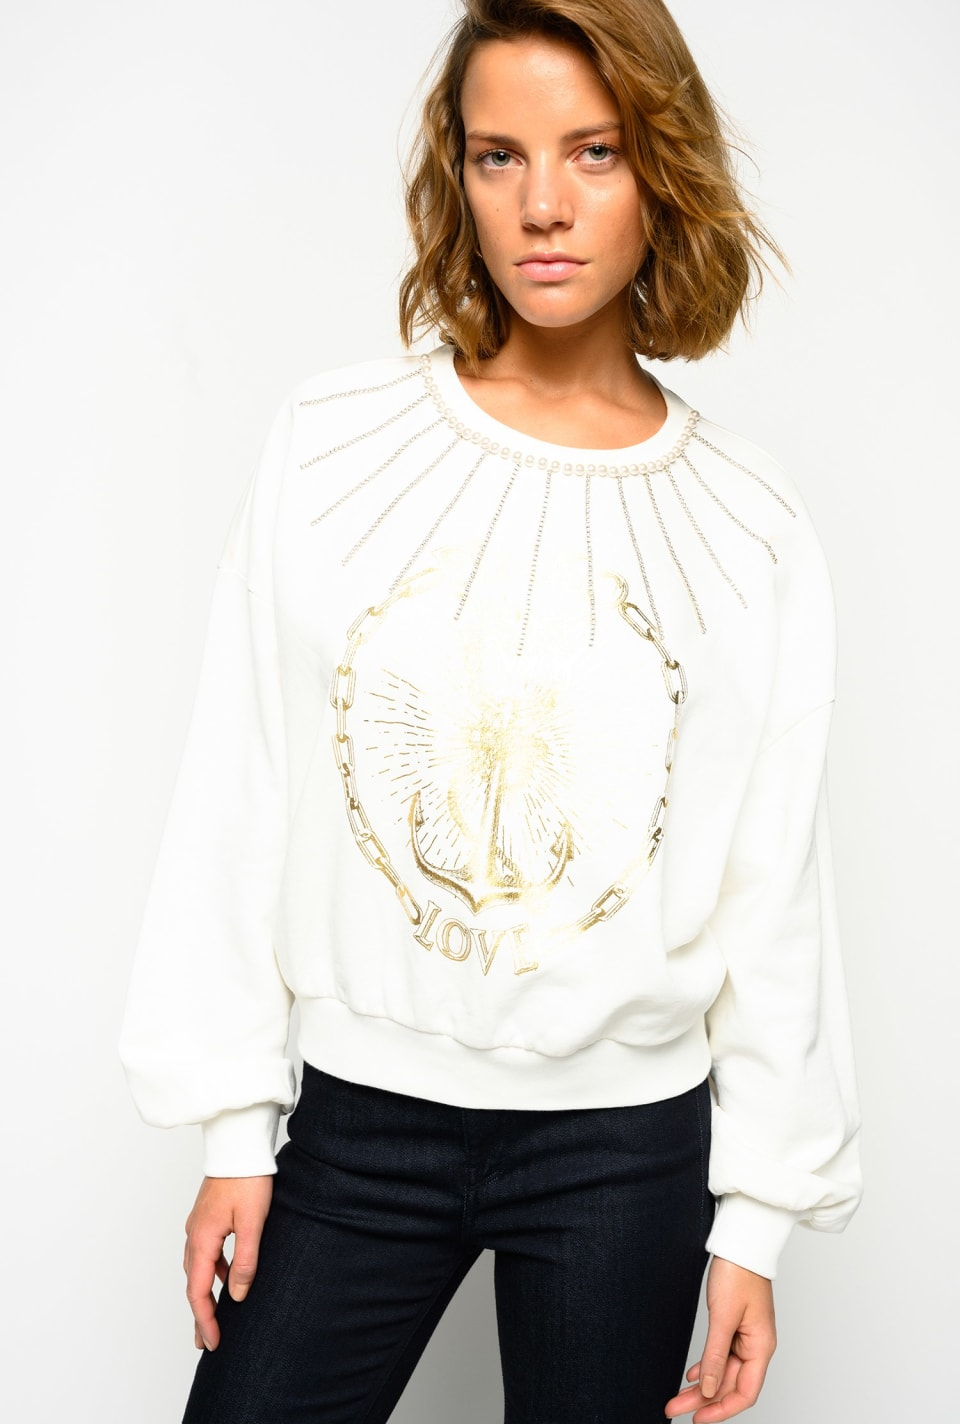 PINKO Love sweatshirt with anchor print - Pinko